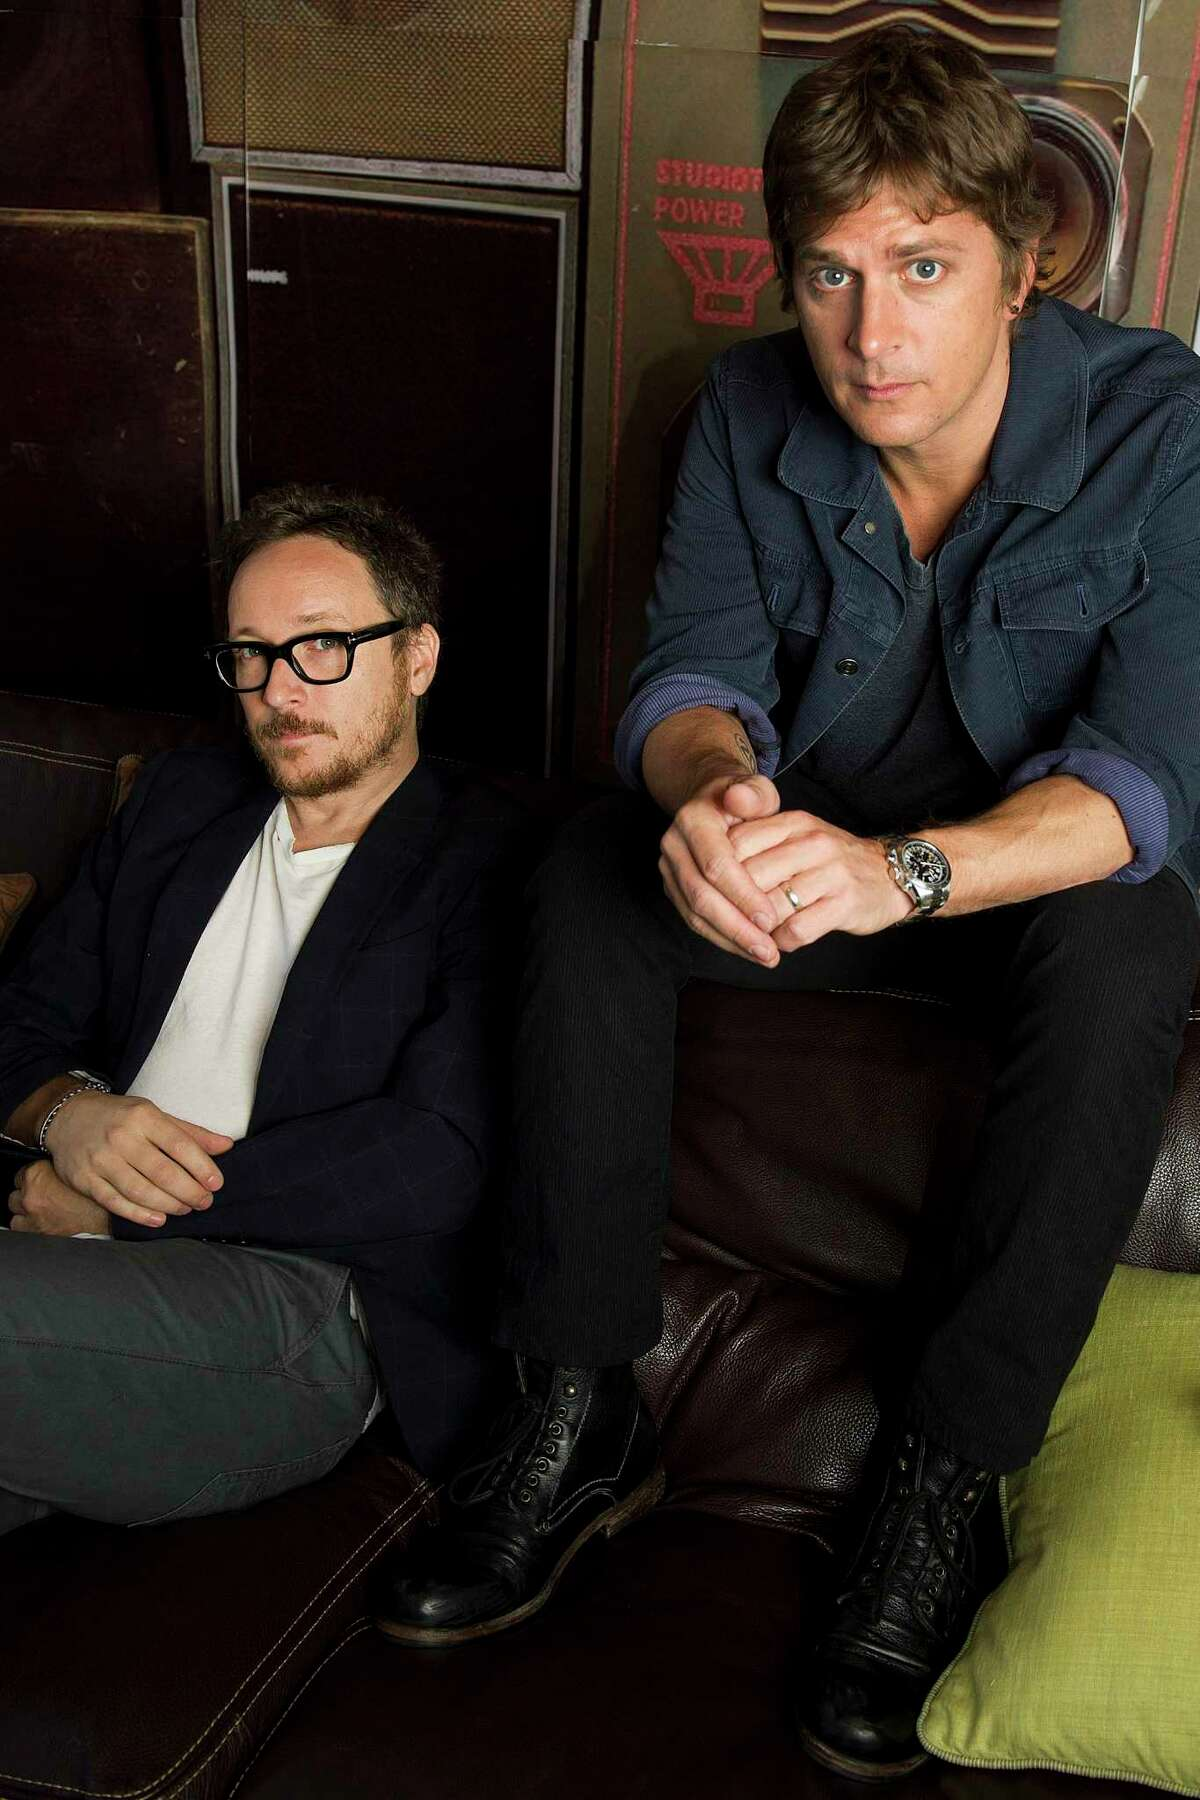 This July 10, 2012 photo shows Rob Thomas, right, and Paul Doucette of Matchbox Twenty in New York. (Photo by Charles Sykes/Invision/AP)